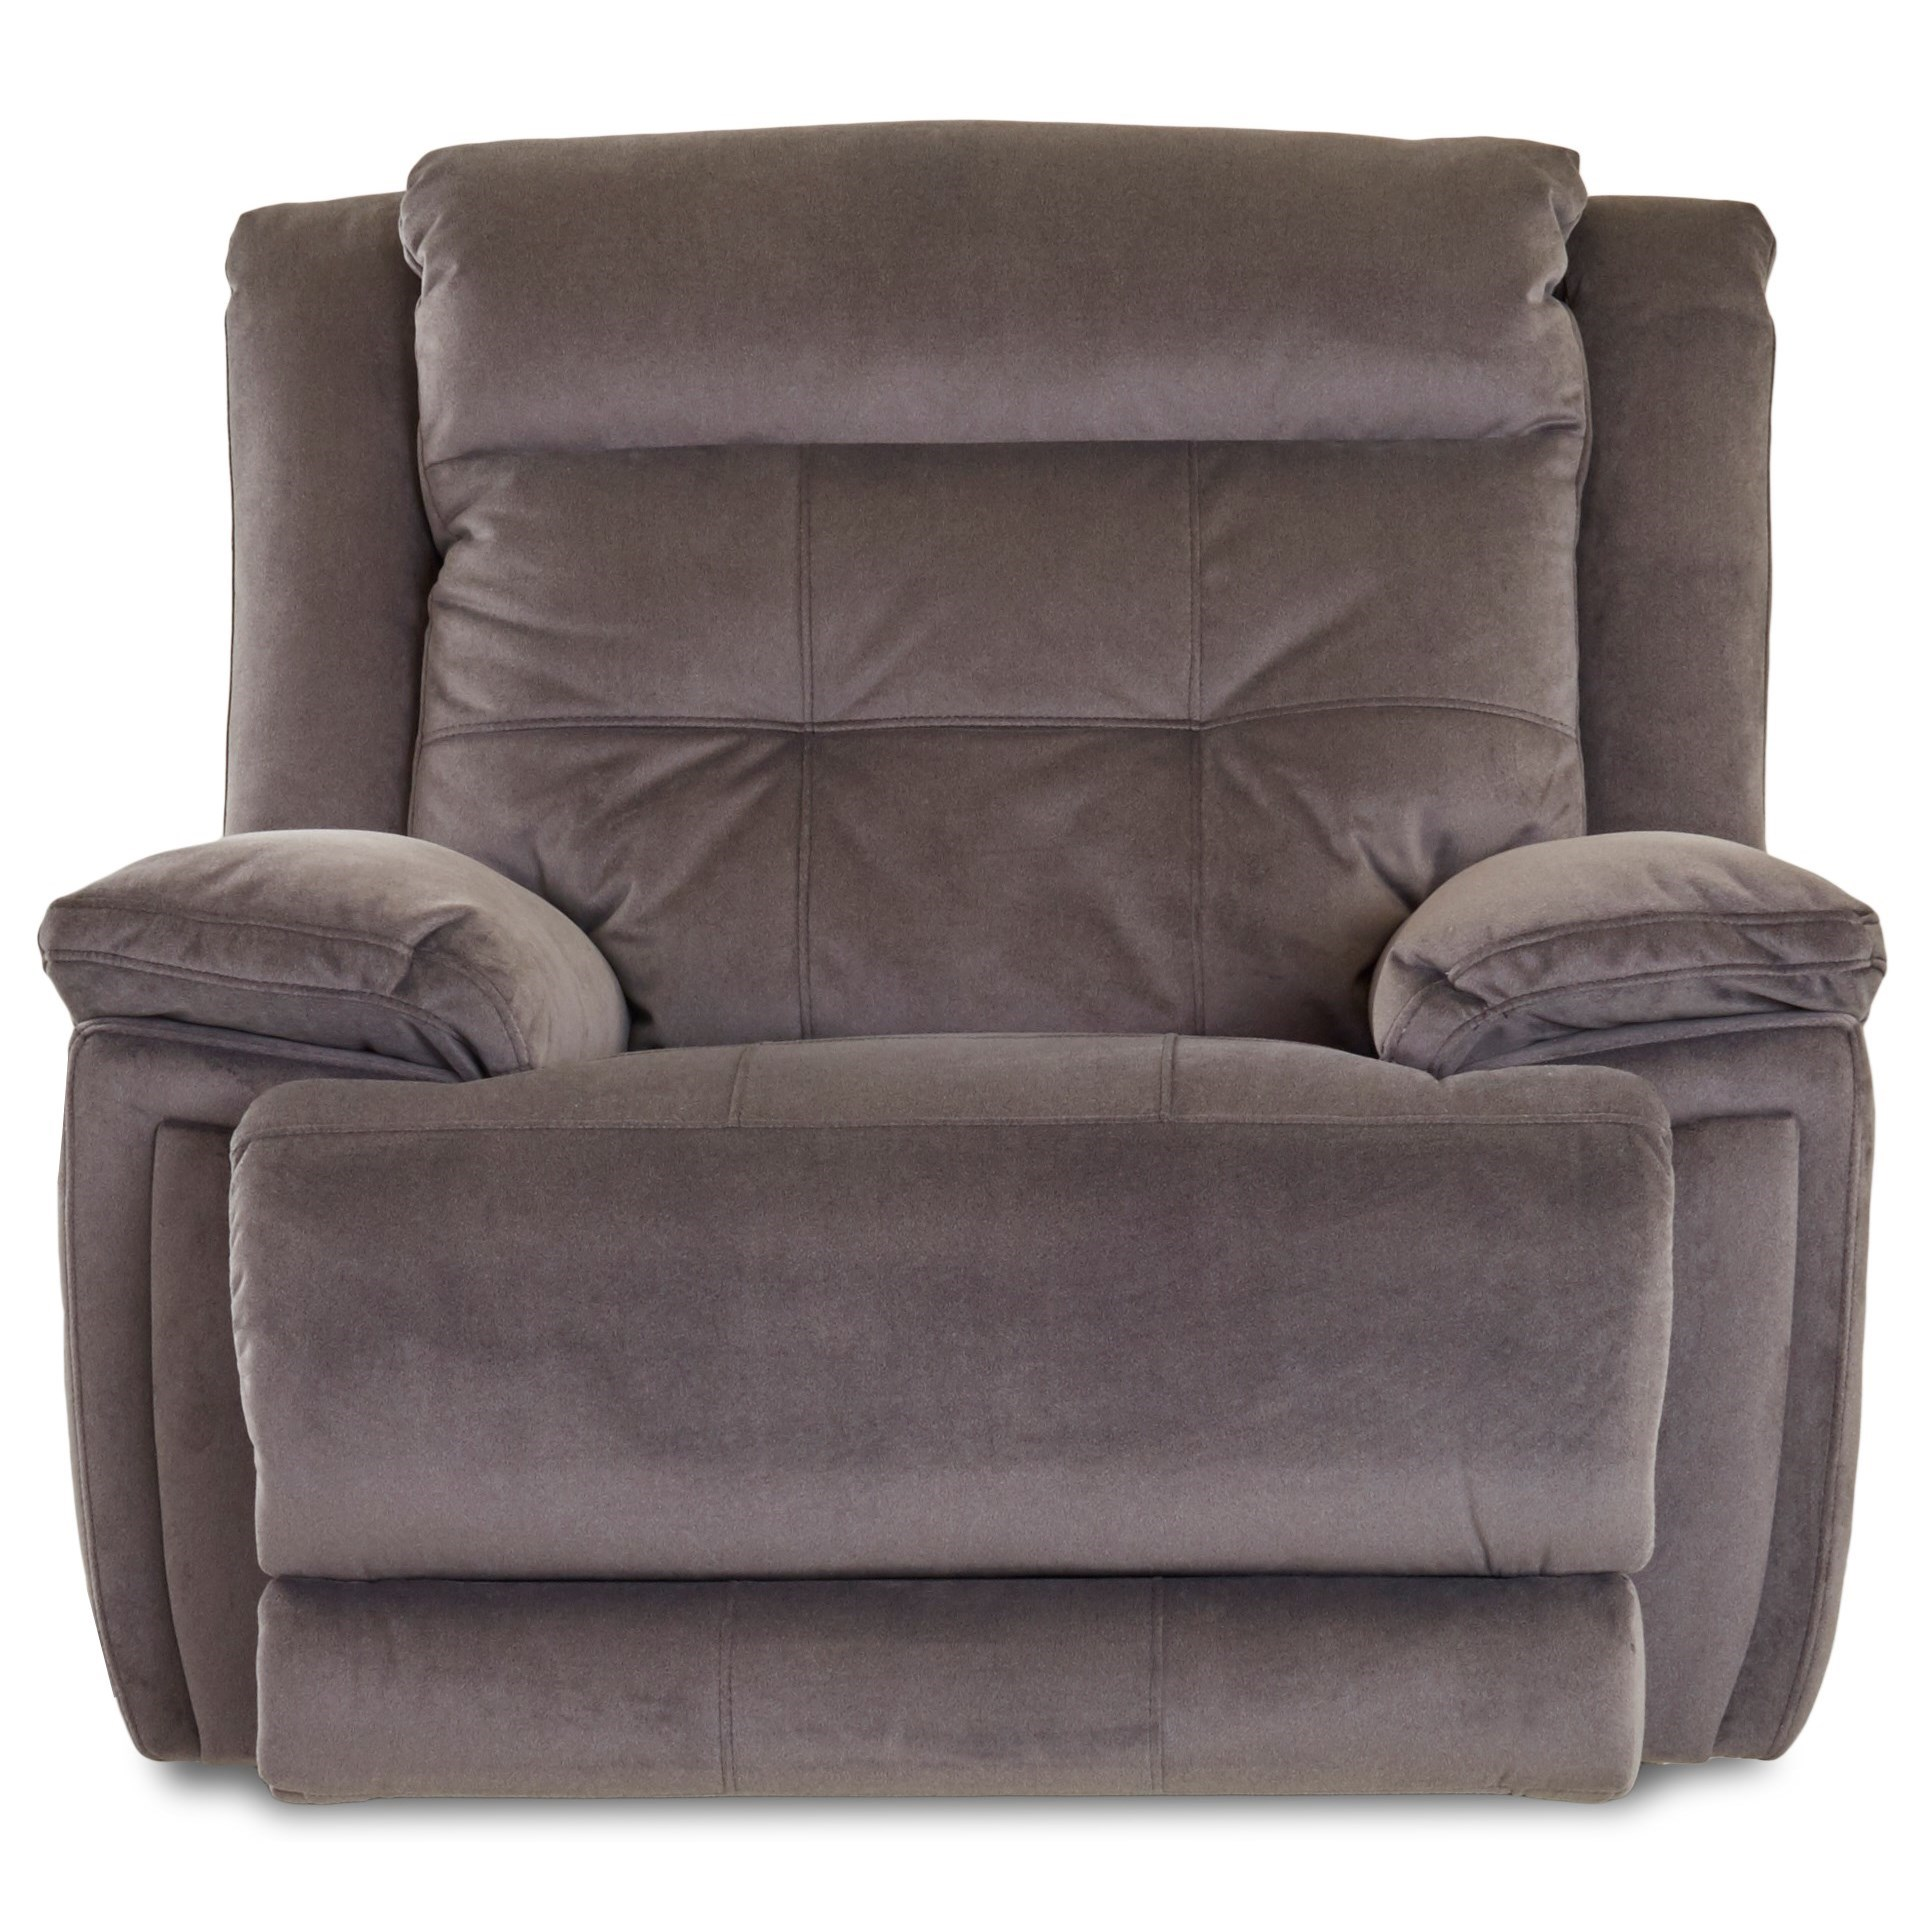 Klaussner McCall Power Rocking Recliner with Power Headrest - Item Number: 62543-6 PWRRC- Geordie Coal